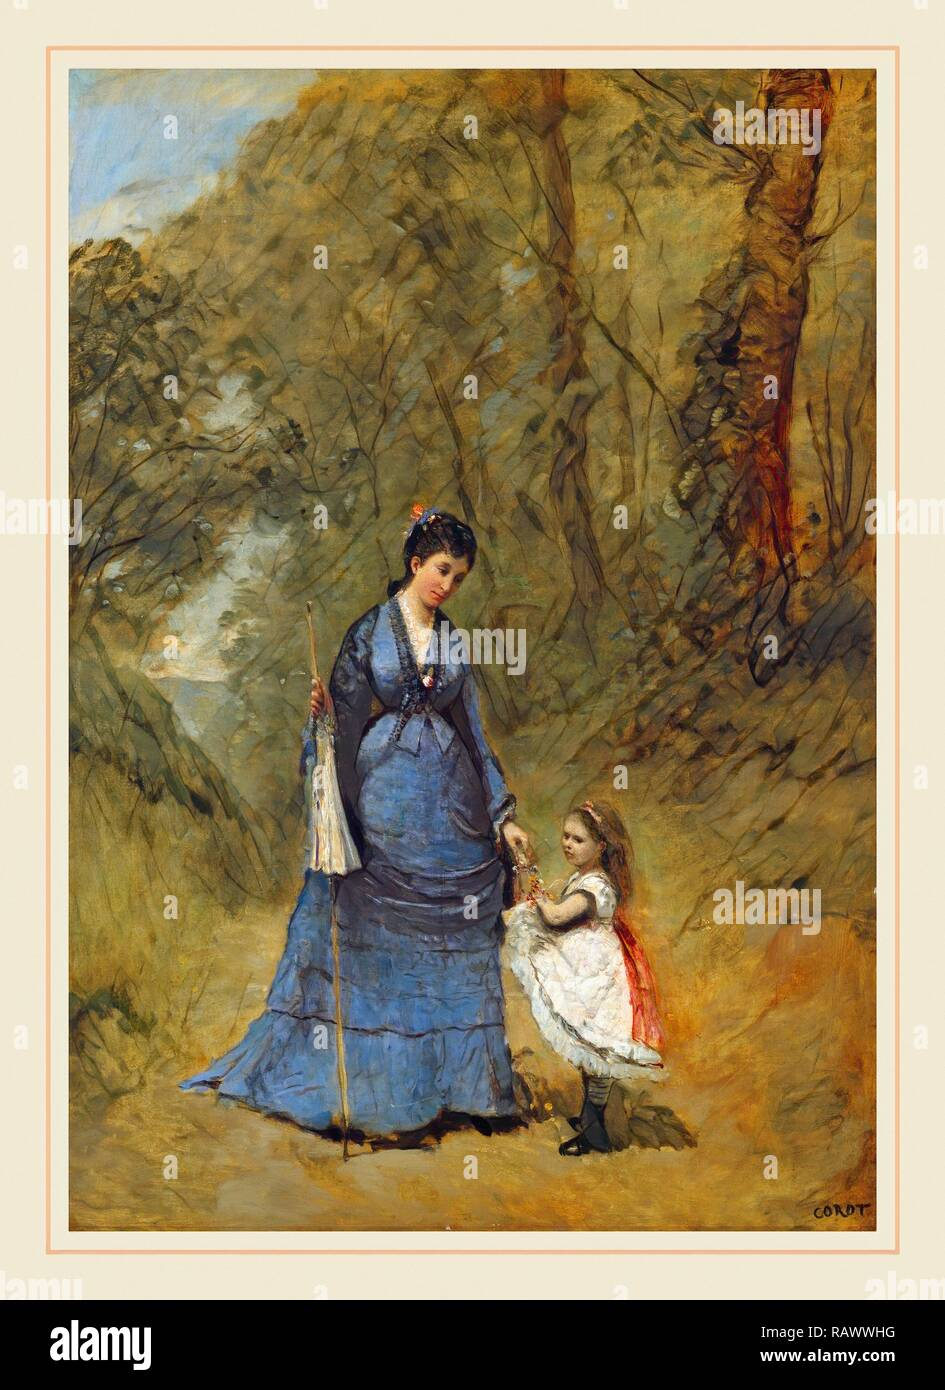 Jean-Baptiste-Camille Corot, Madame Stumpf and Her Daughter, French, 1796-1875, 1872, oil on canvas. Reimagined Stock Photo